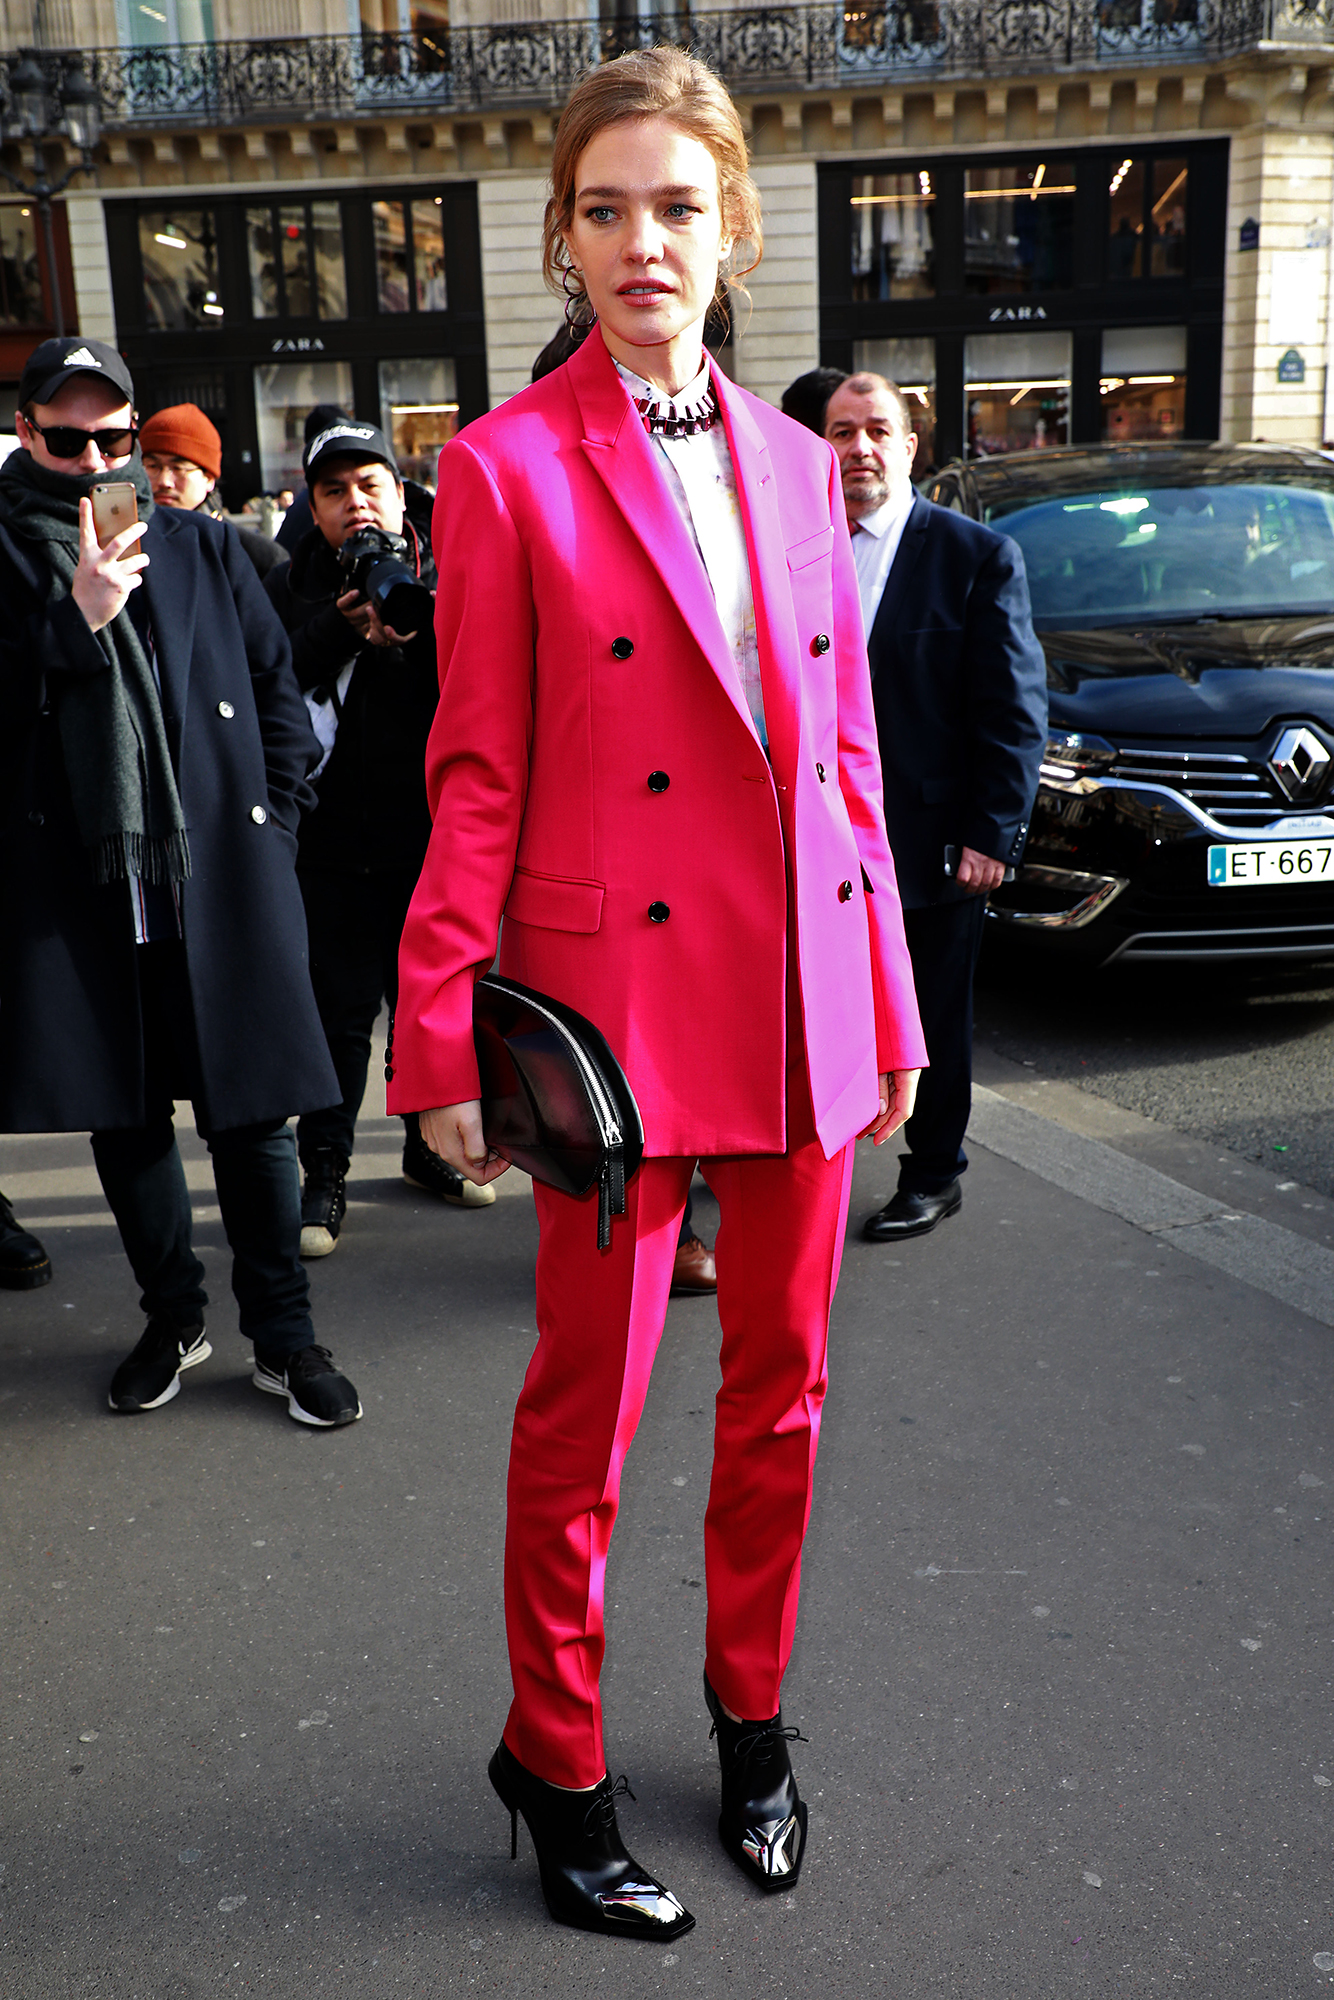 See the Best Celebrity Street Style From Paris Menswear Fall-Winter 2019 Fashion Week - The Russian model brightened things up in a double-breasted hot pink suit at the Berluti show on Friday, January 18.